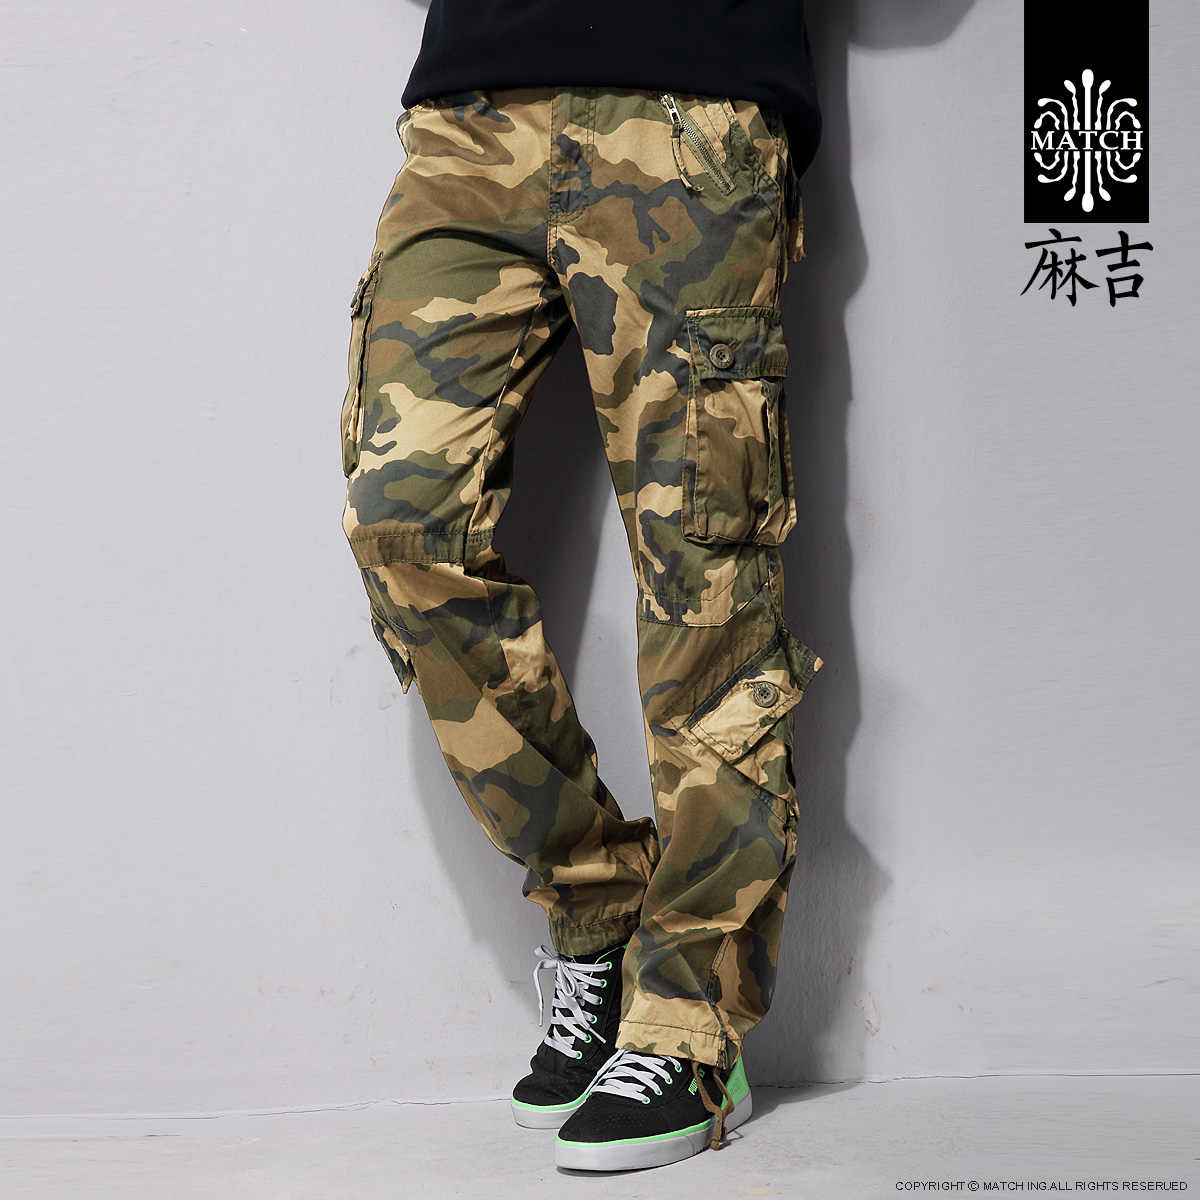 063fe69e33e5ae Detail Feedback Questions about 2019 spring new arrival Match camouflage  long trouser loose plus size multi pockets Combat military army cargo pants  for men ...